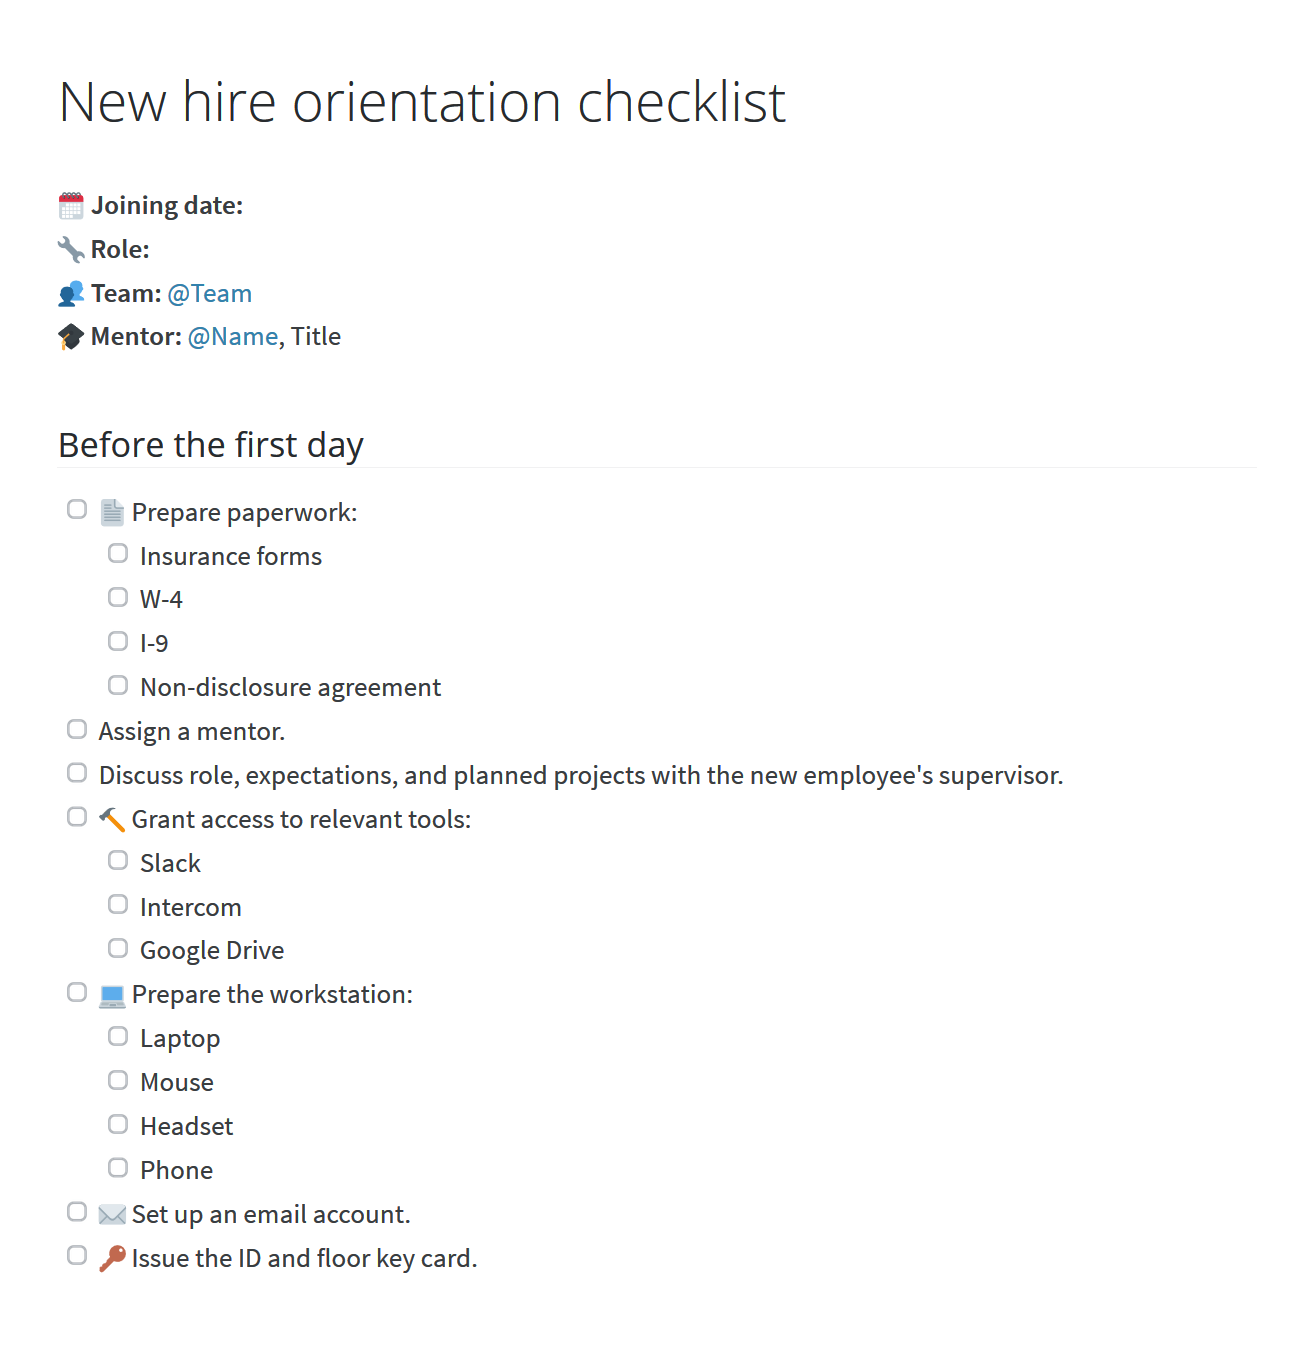 New hire orientation program checklist, before the first day